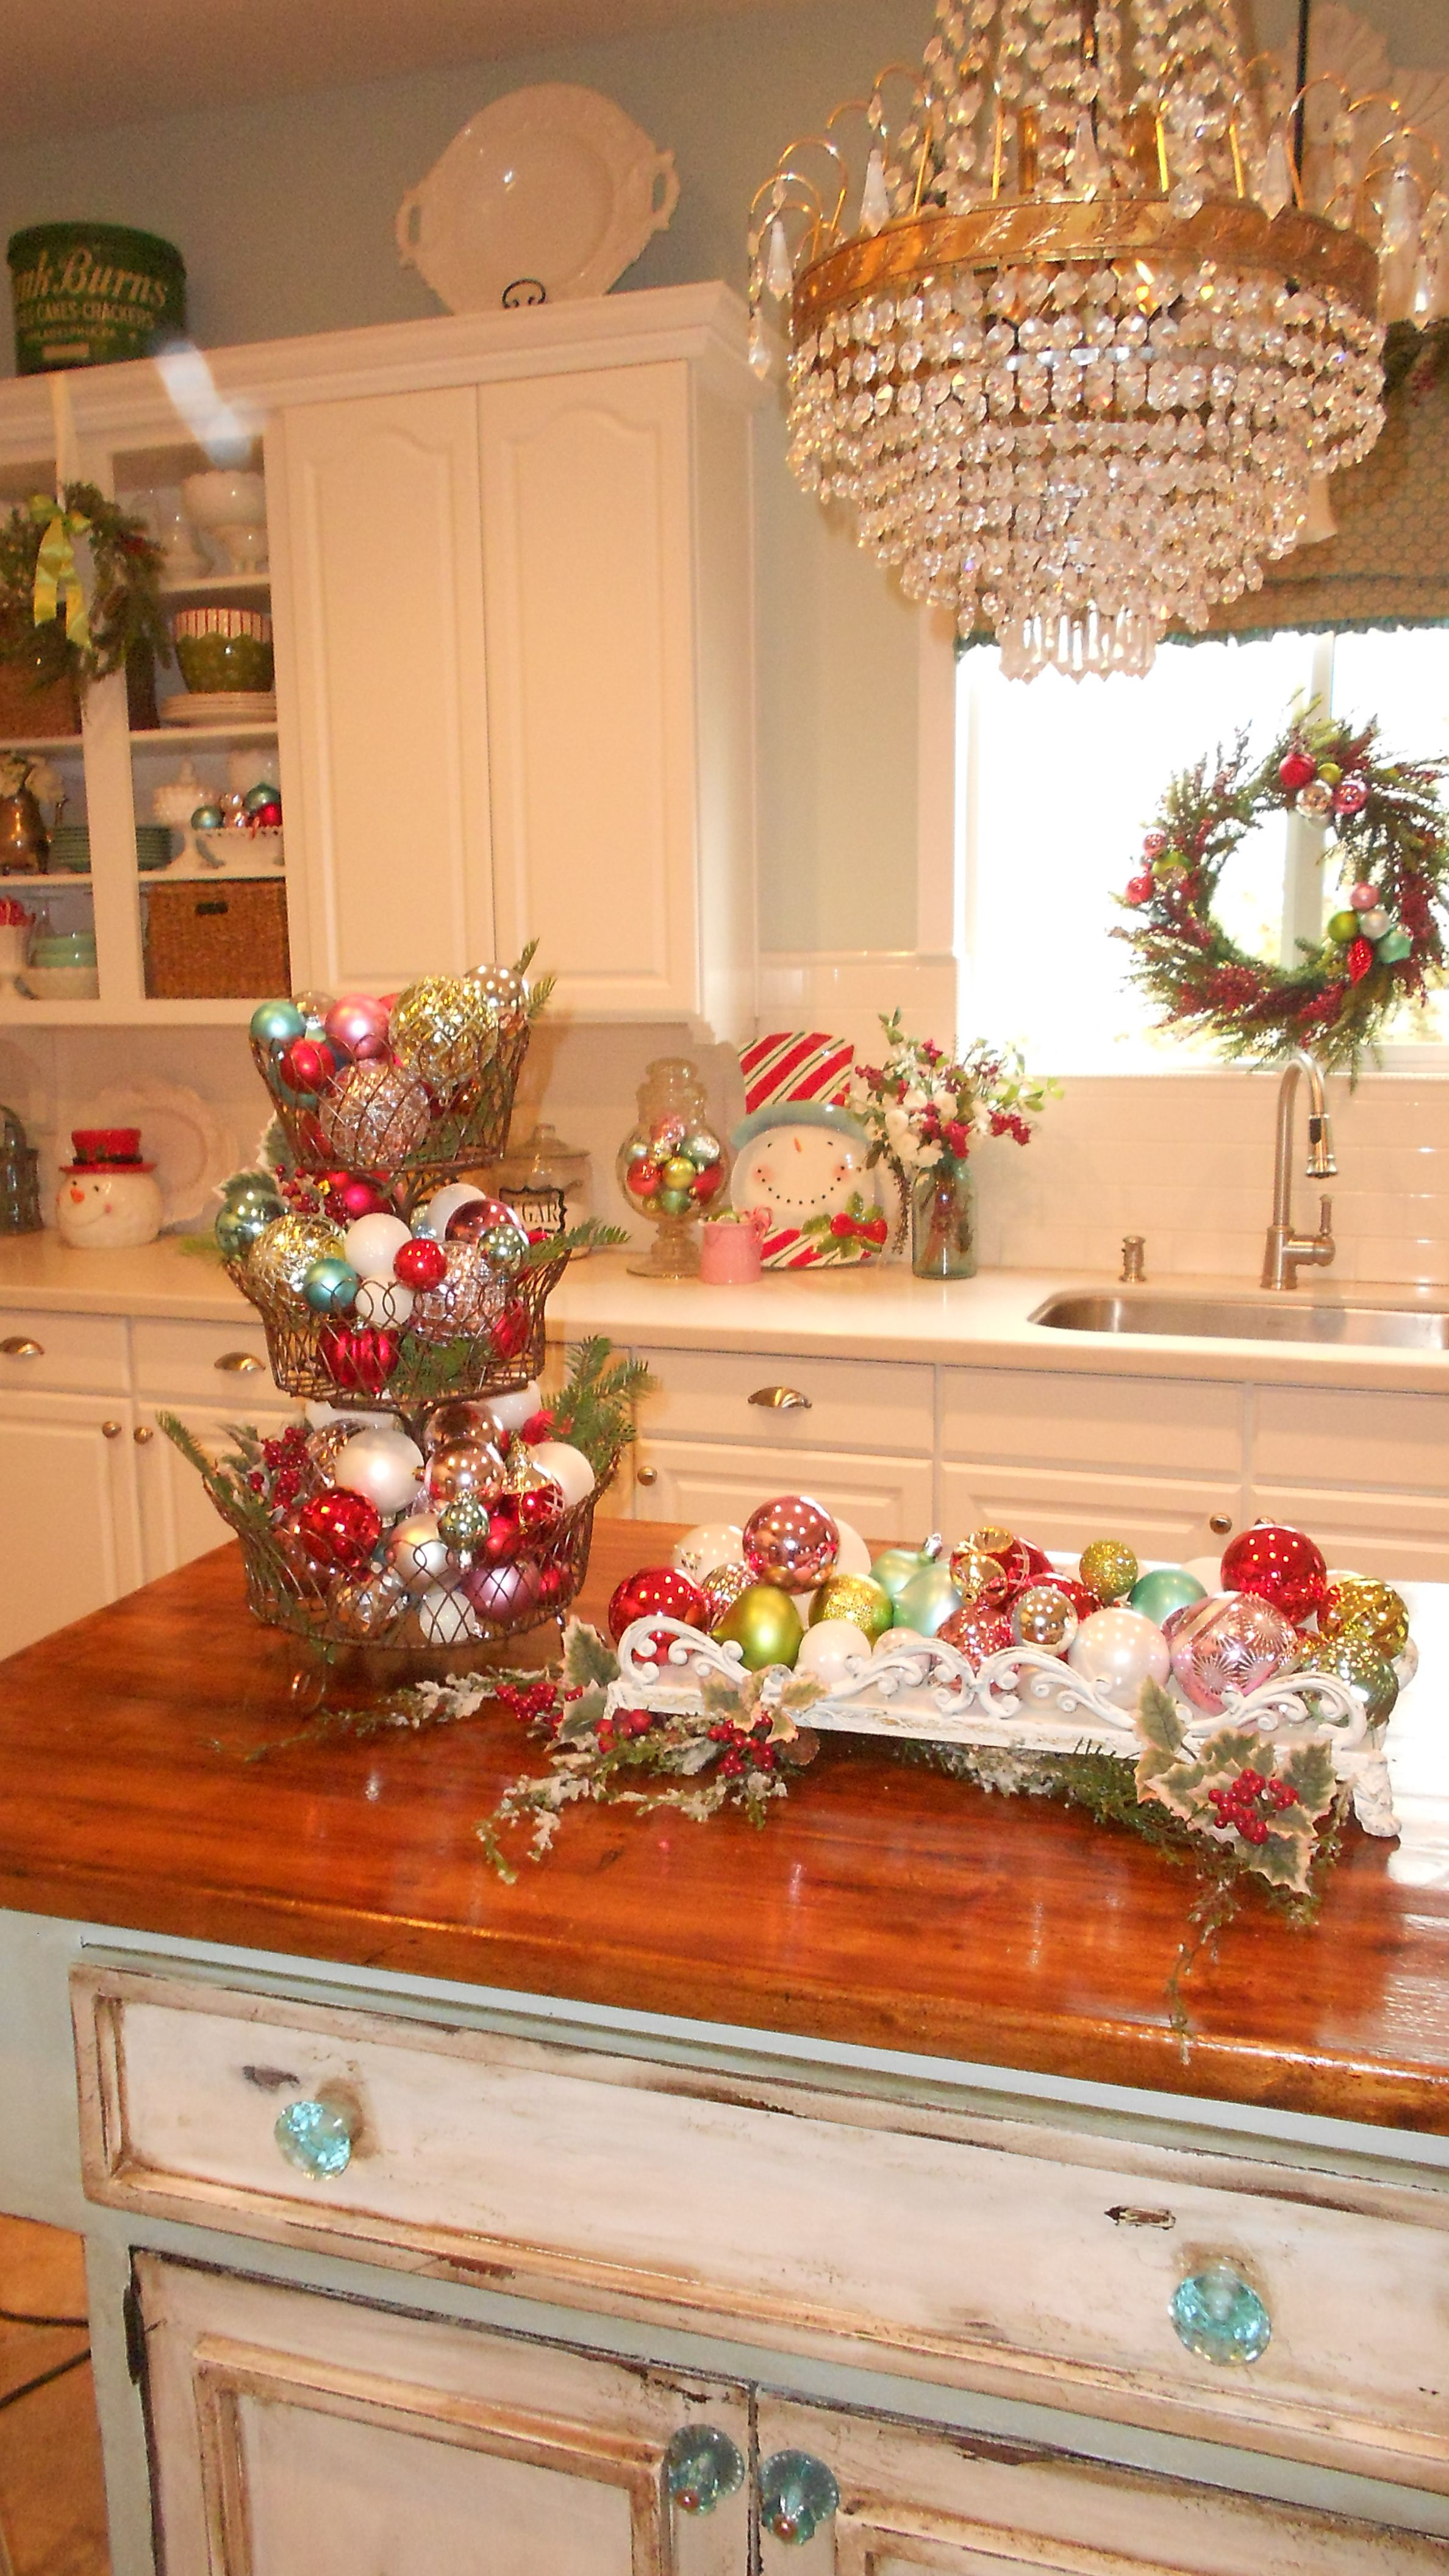 Christmas Decorations Ideas For Kitchen Christmas Decorations